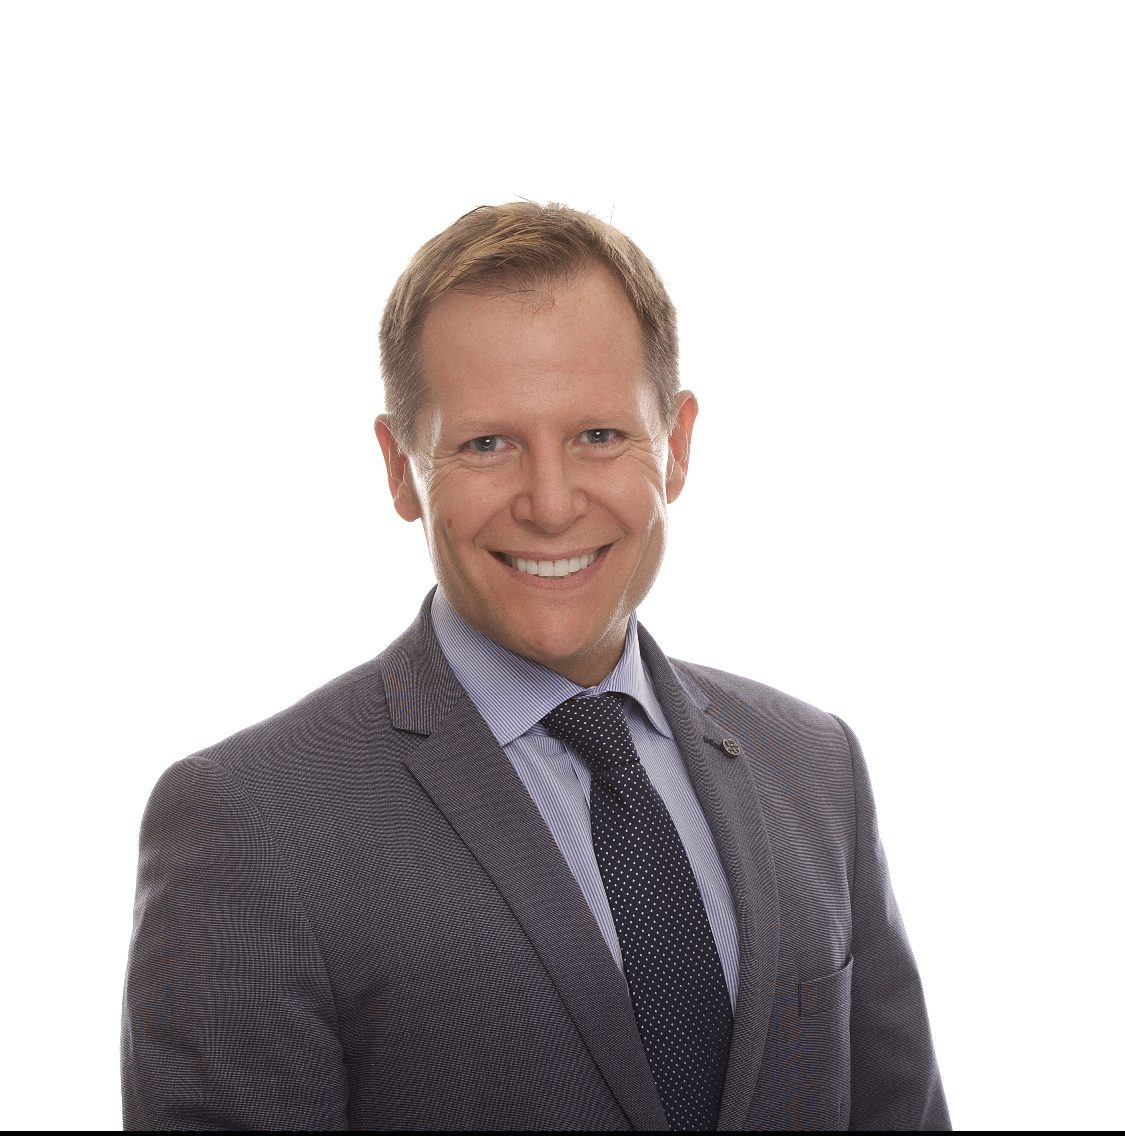 Paul Richardson - TD Wealth Private Investment Advice - Guelph, ON N1G 1Y7 - (519)826-7909 | ShowMeLocal.com